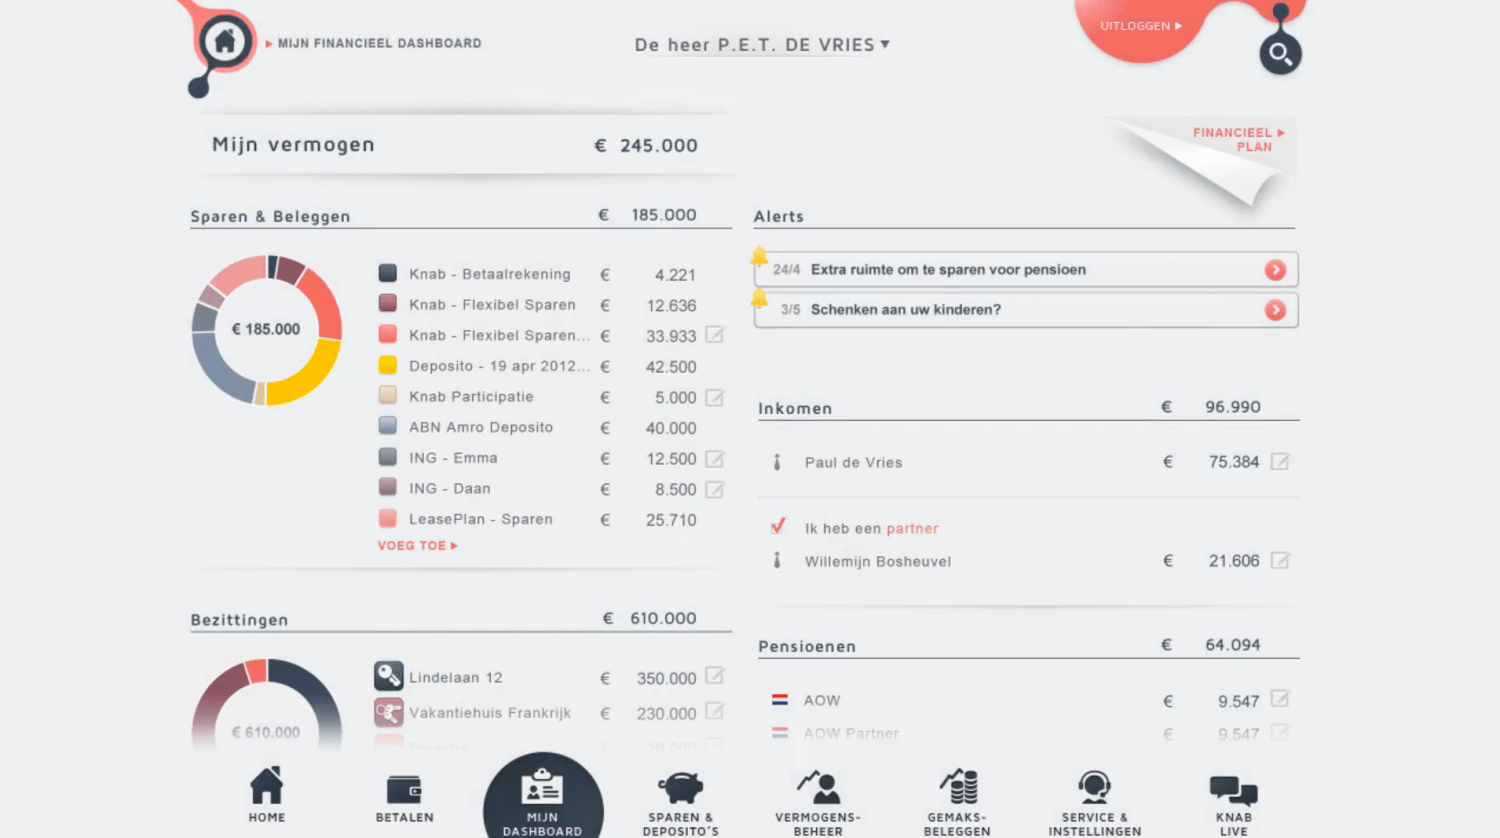 financieel-dashboard-knab-bank-van-morgen-aegon-finno.png